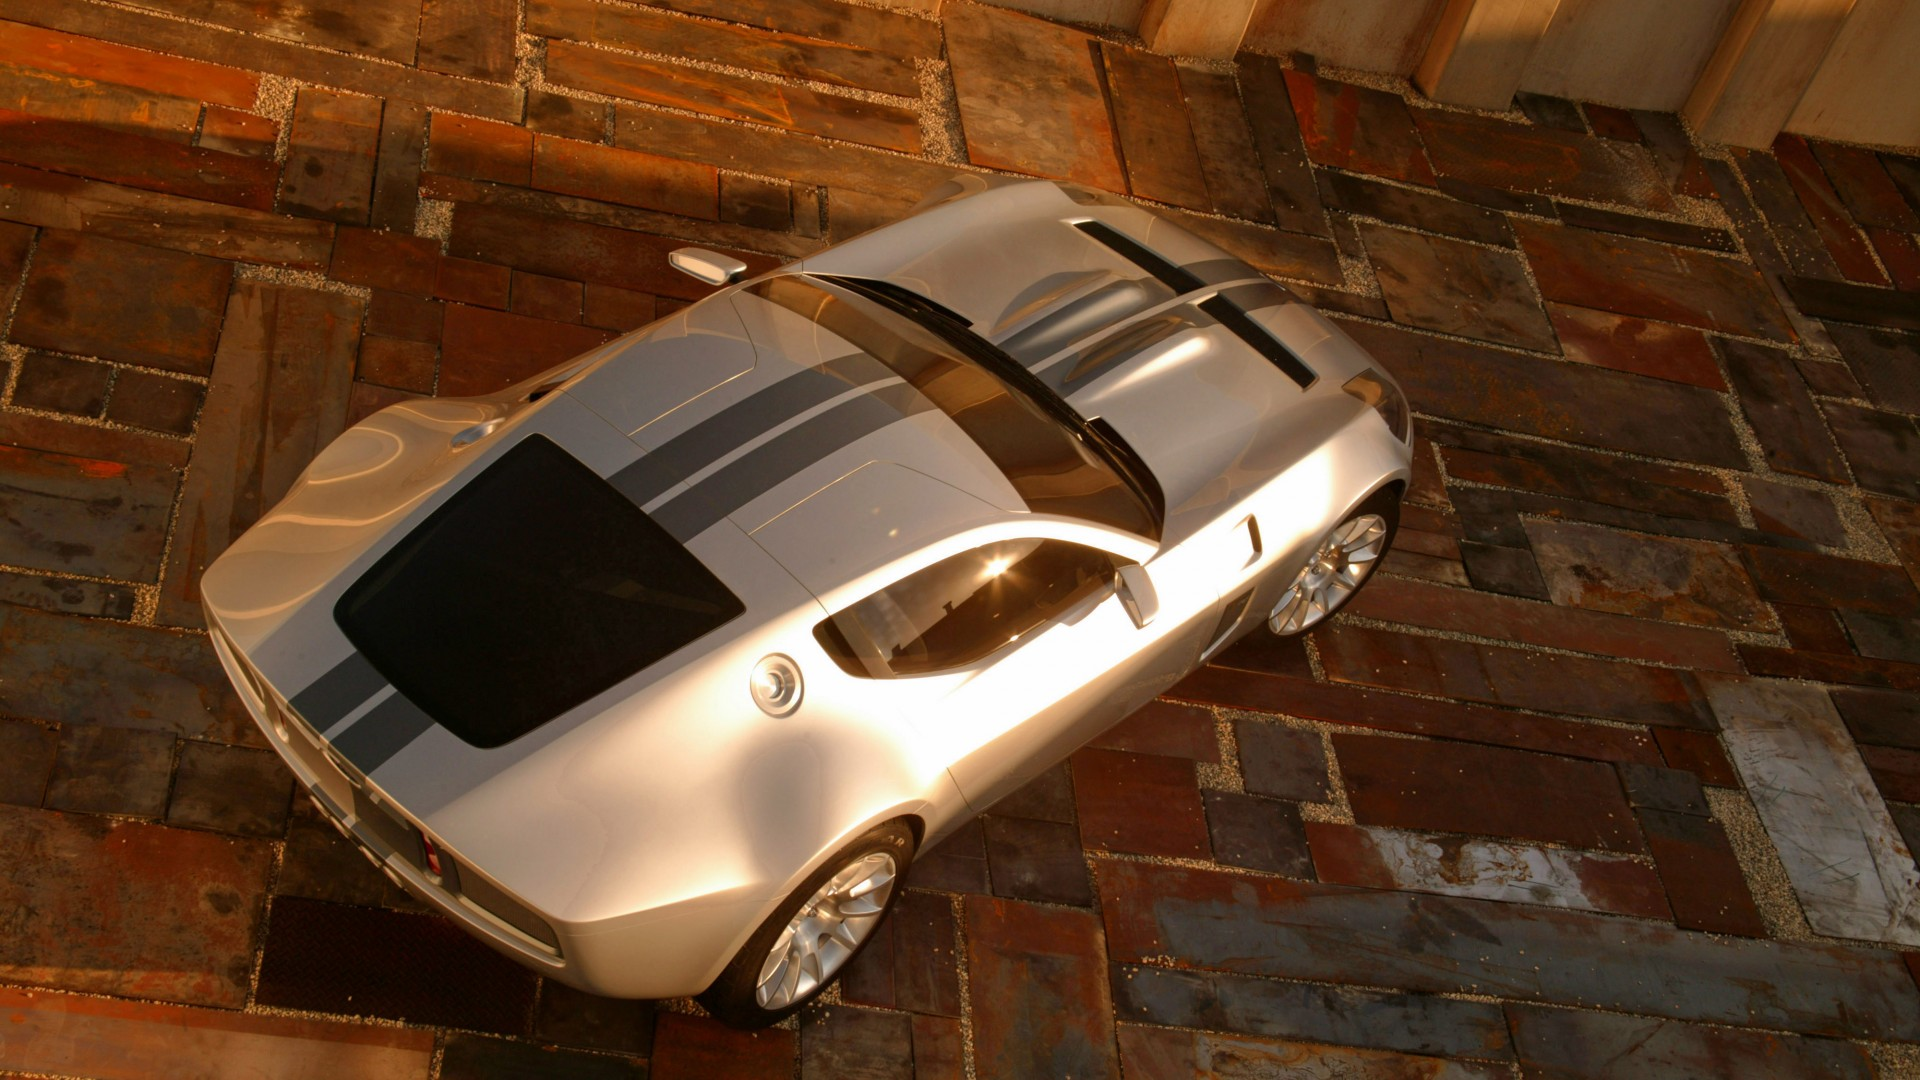 Ford Shelby GR-1, concept, Ford, Shelby, GT, Gran Turismo, sports car, supercar, top (horizontal)